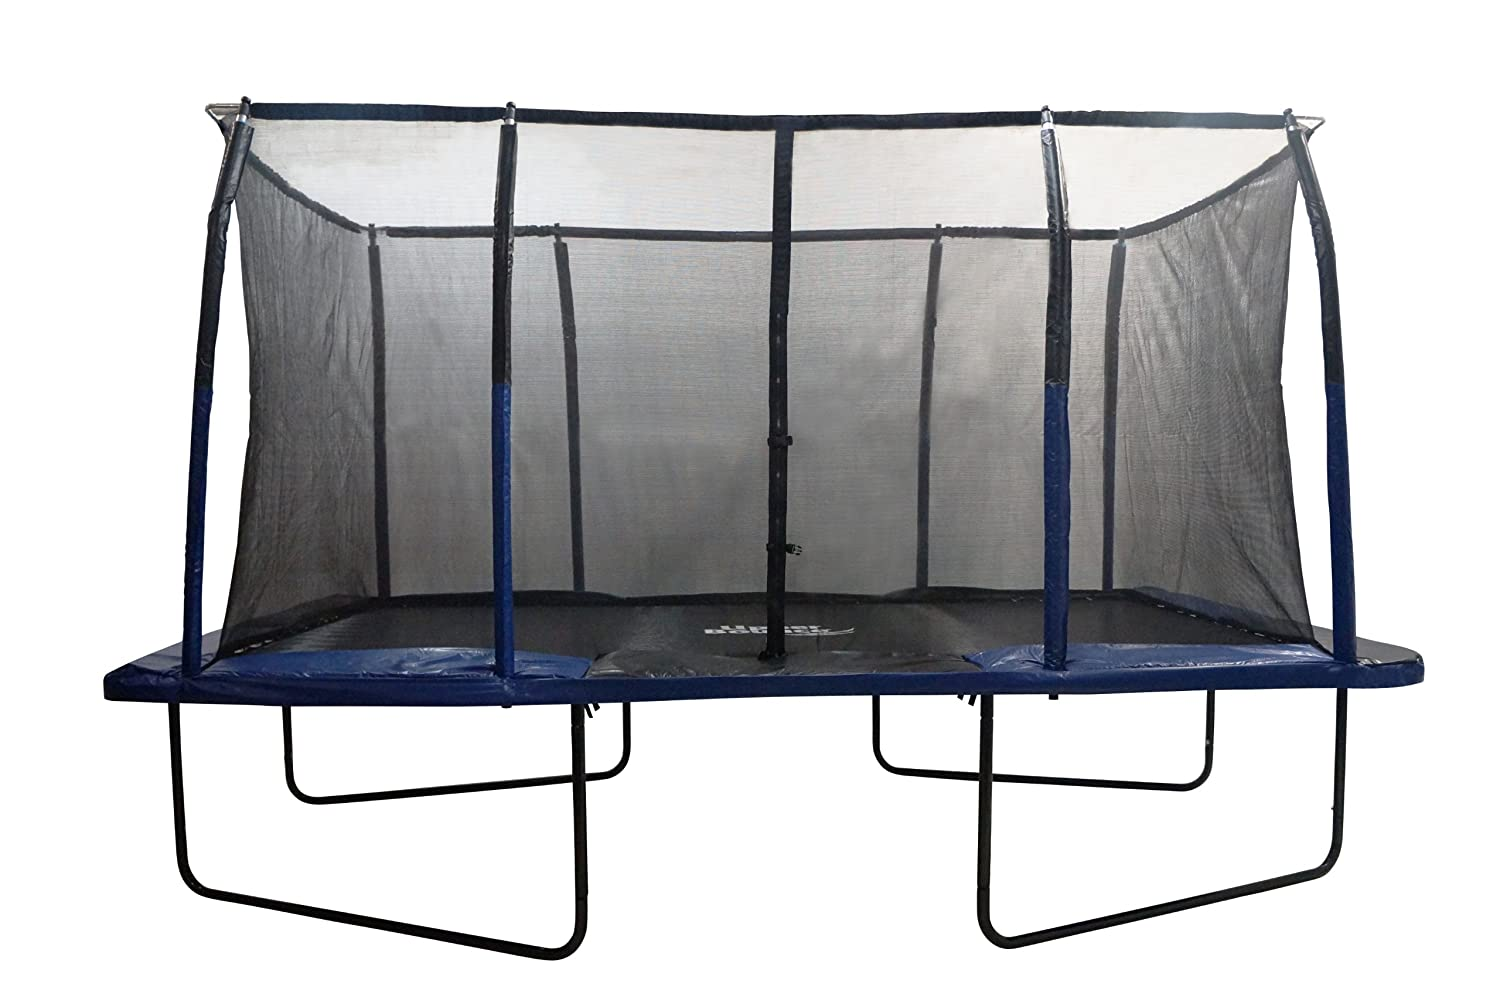 Upper Bounce Rectangular Trampoline (Easiest to Assemble)